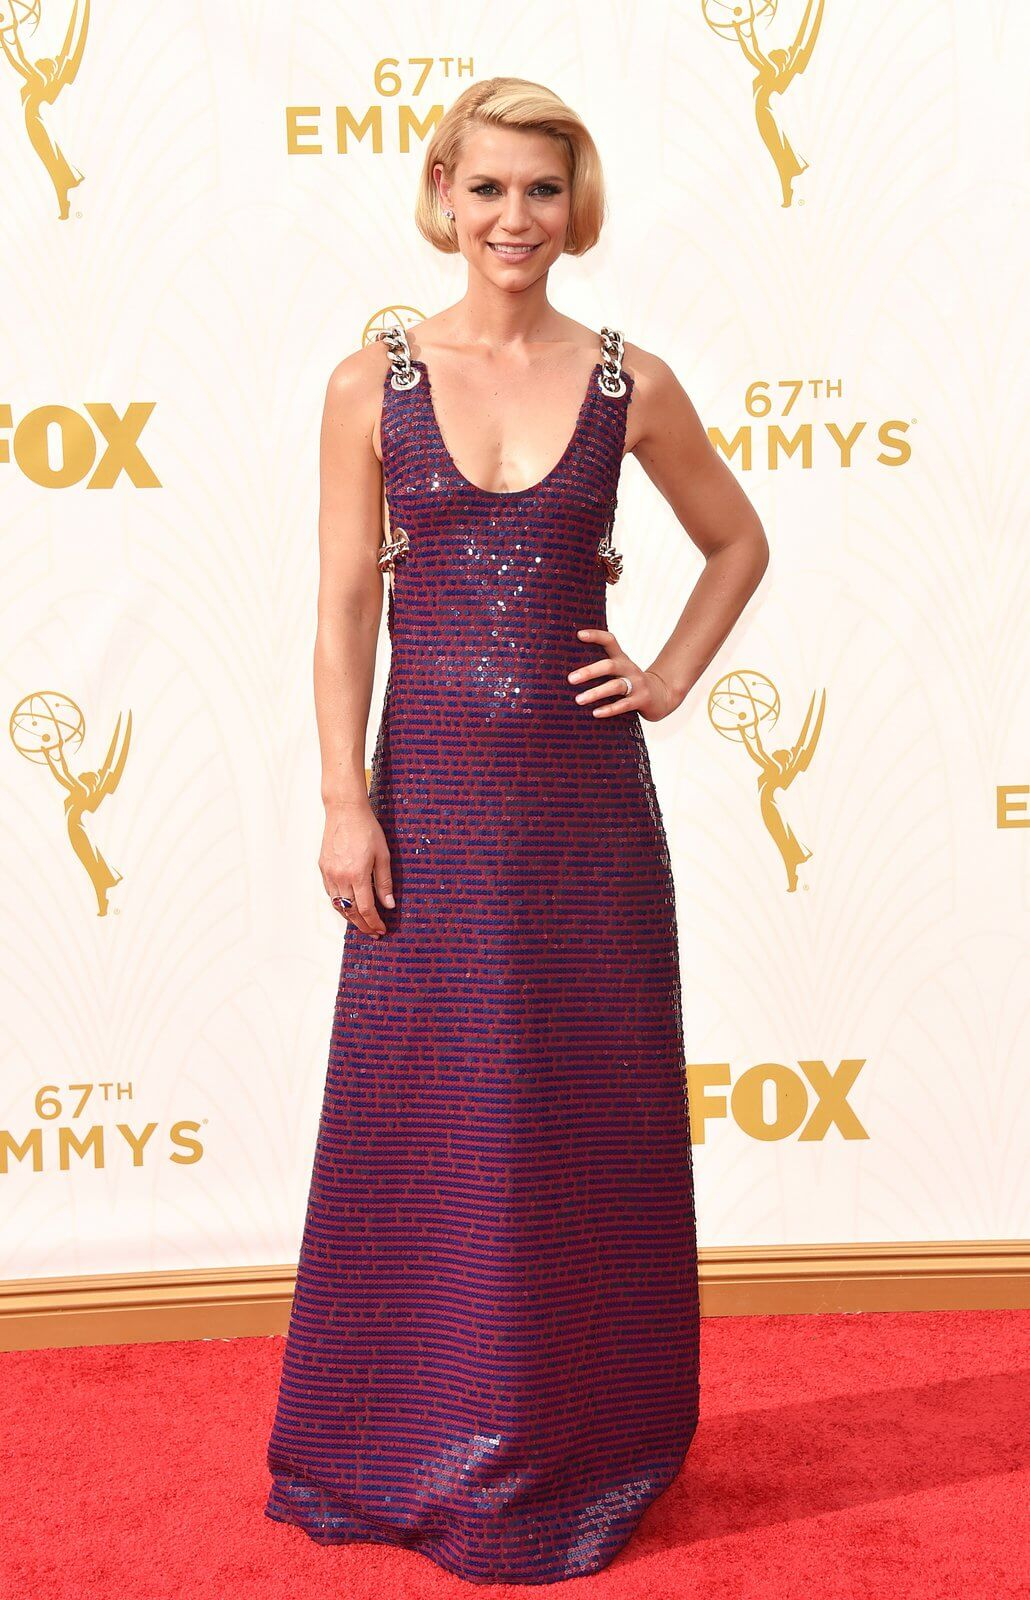 claire-danes-emmys-red-carpet-2015